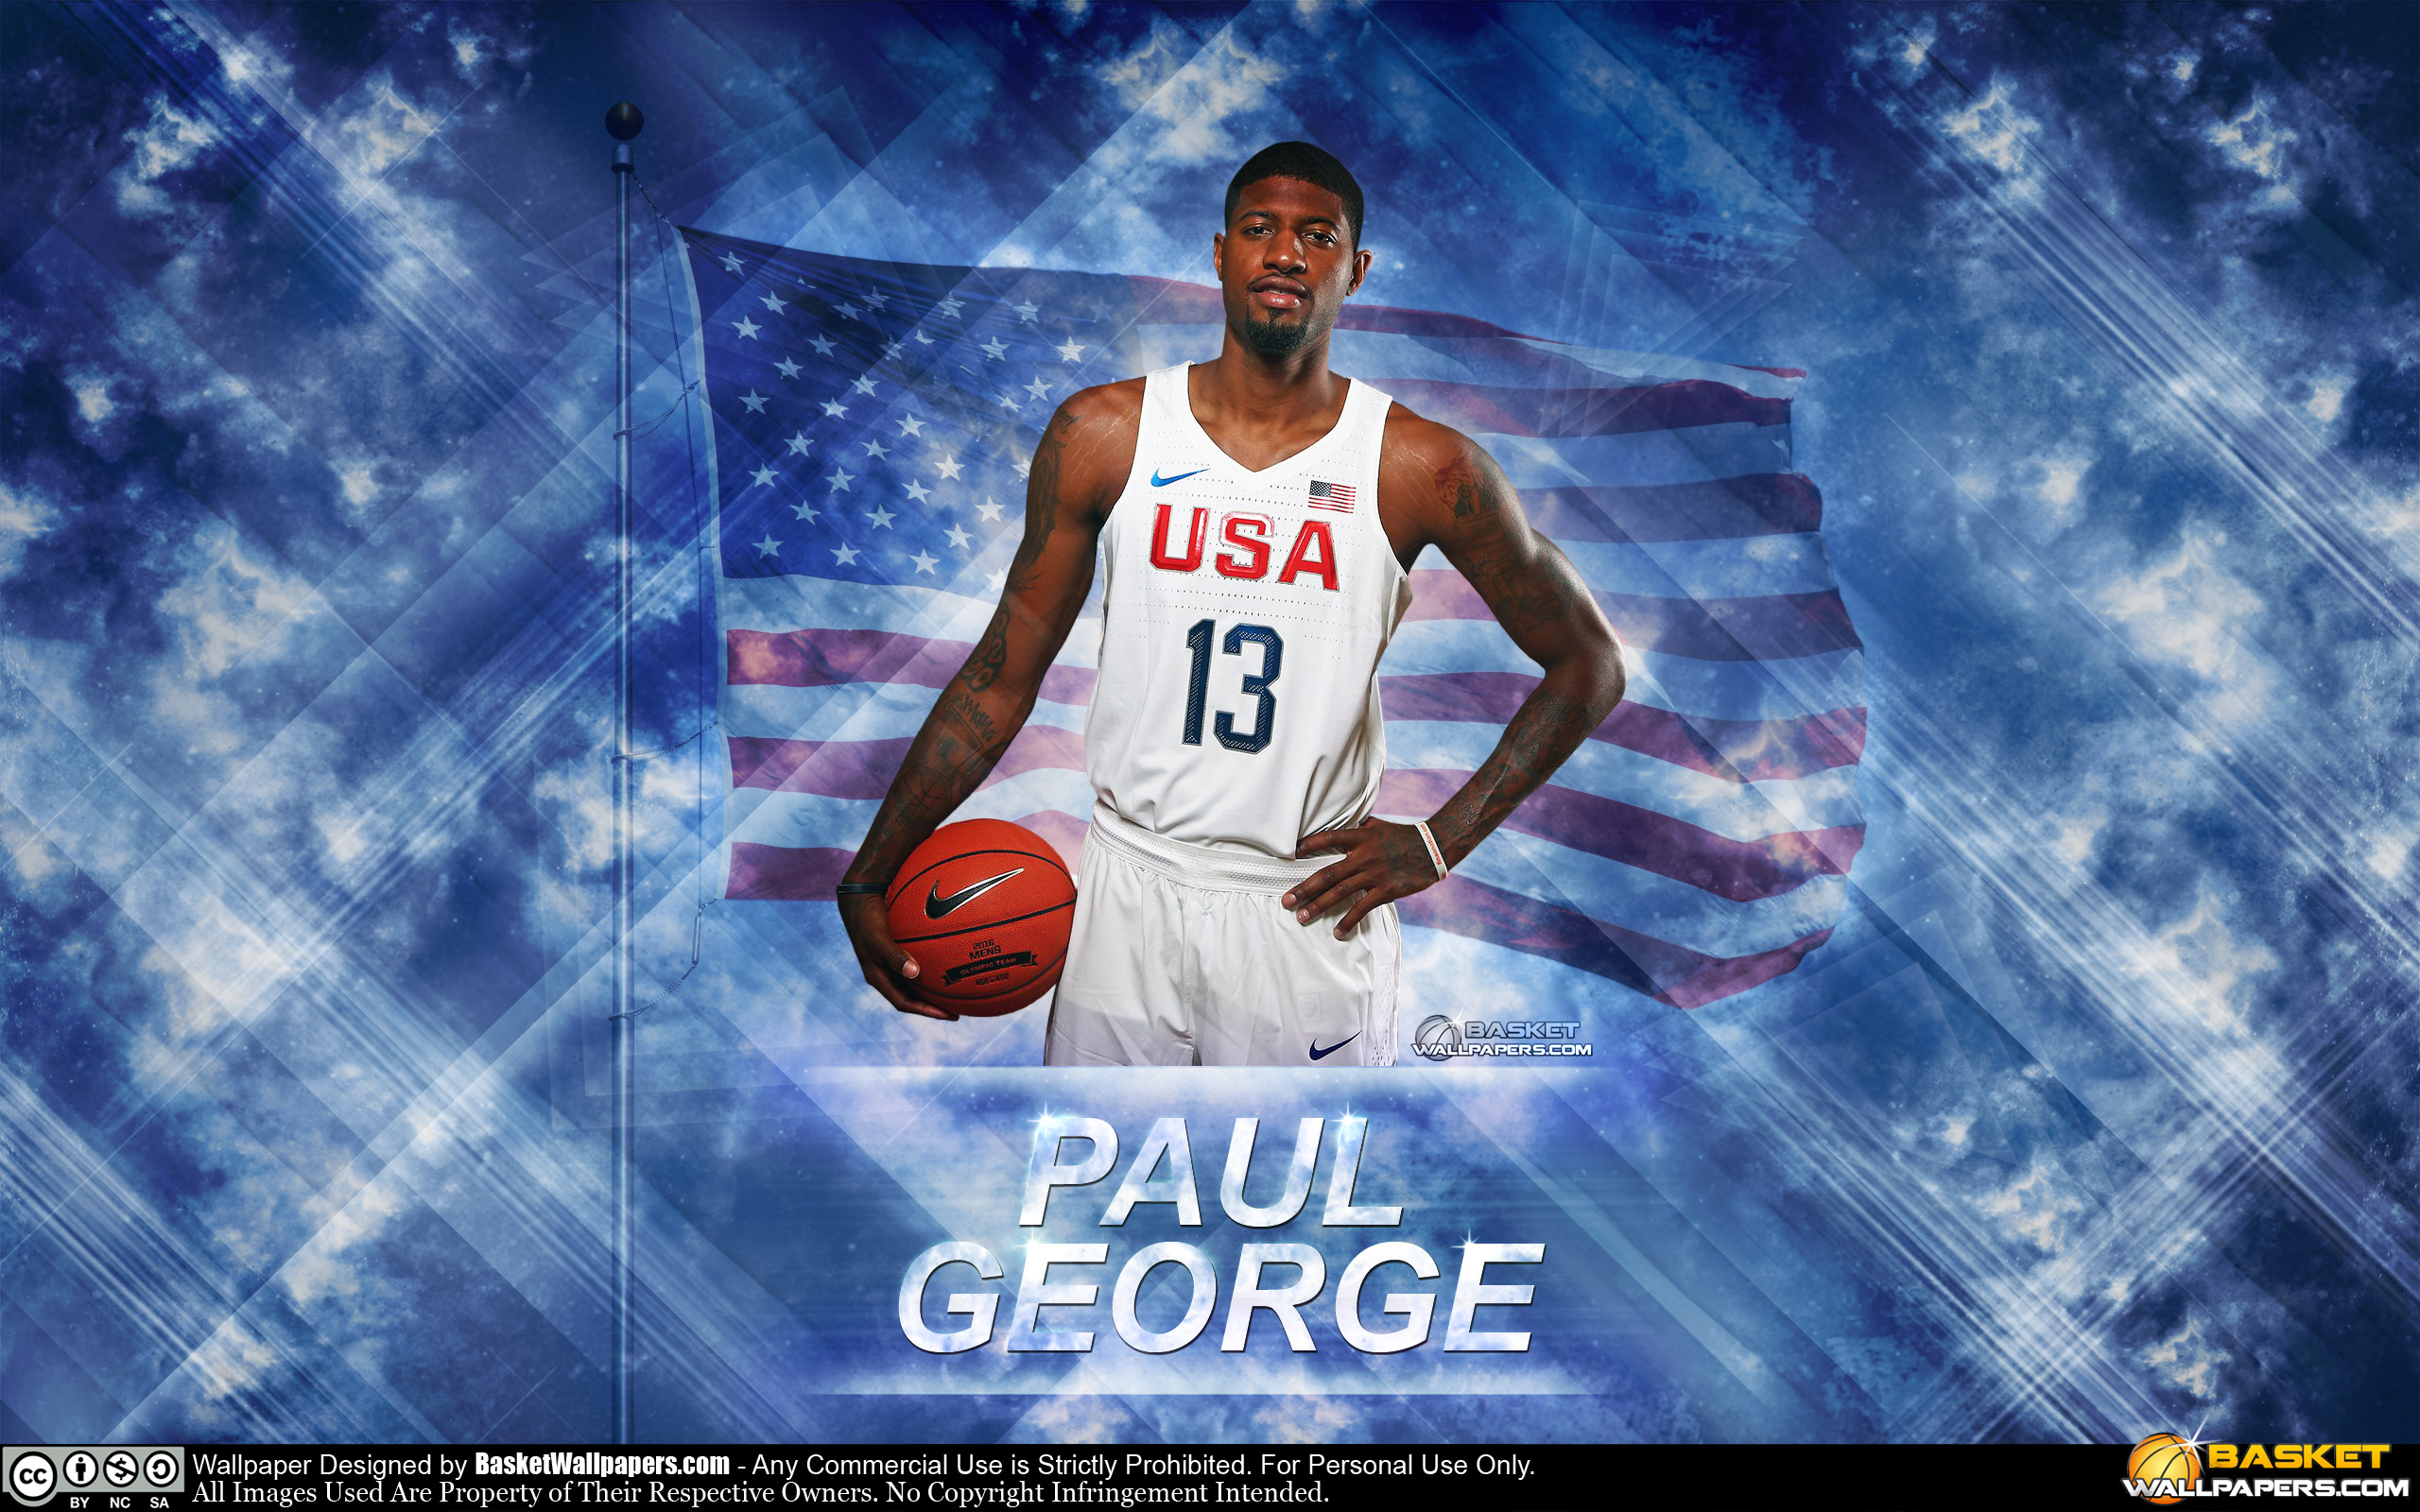 Paul George Wallpapers Basketball Wallpapers at